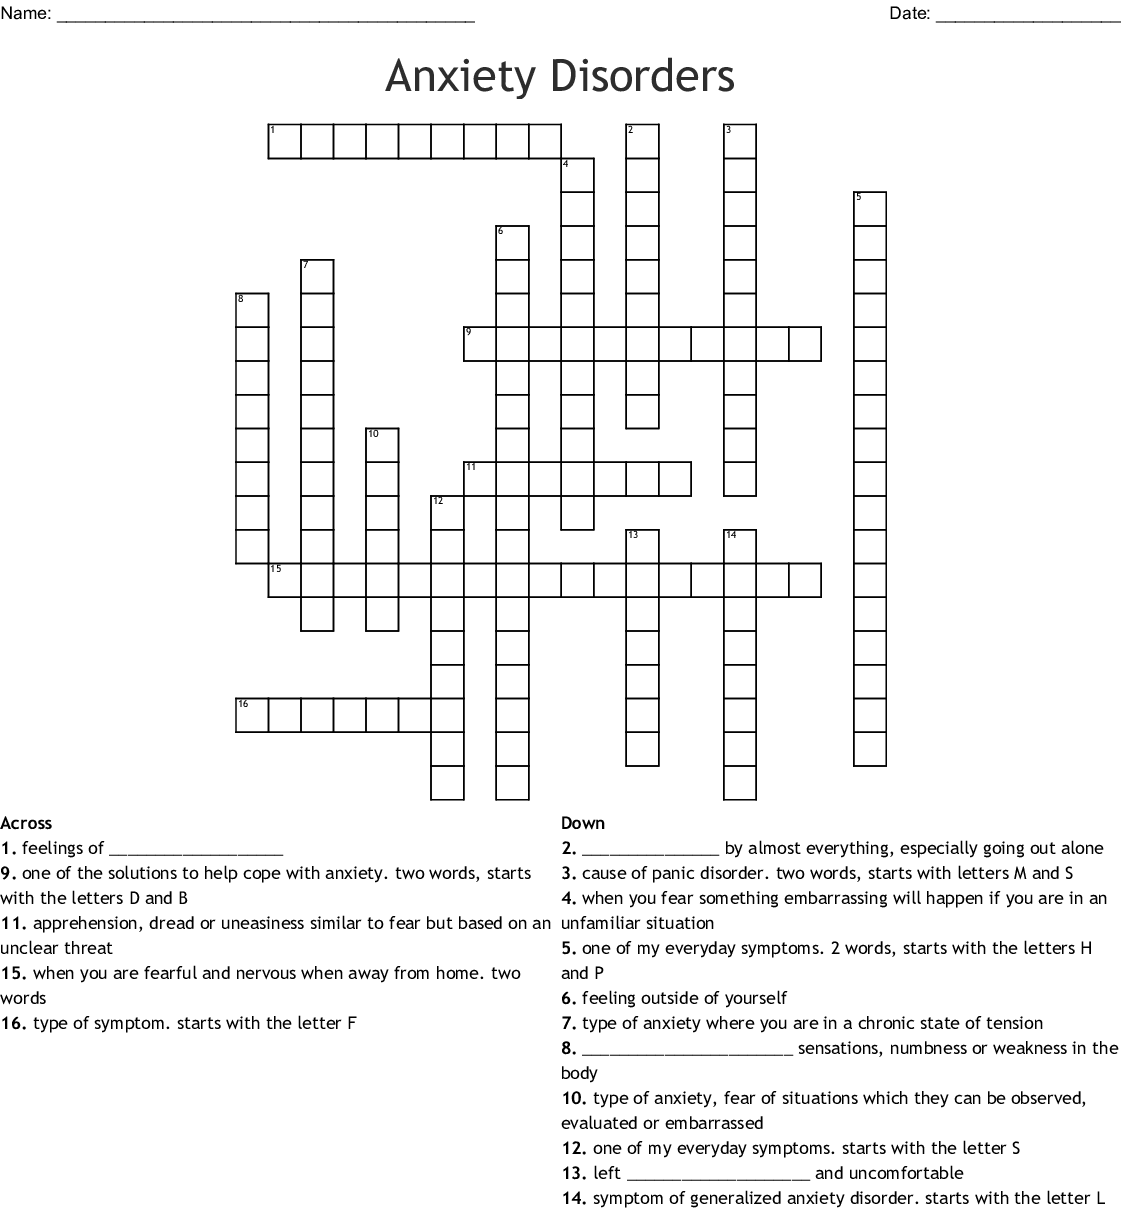 Crossword Anxiety Disorders Worksheet Answers